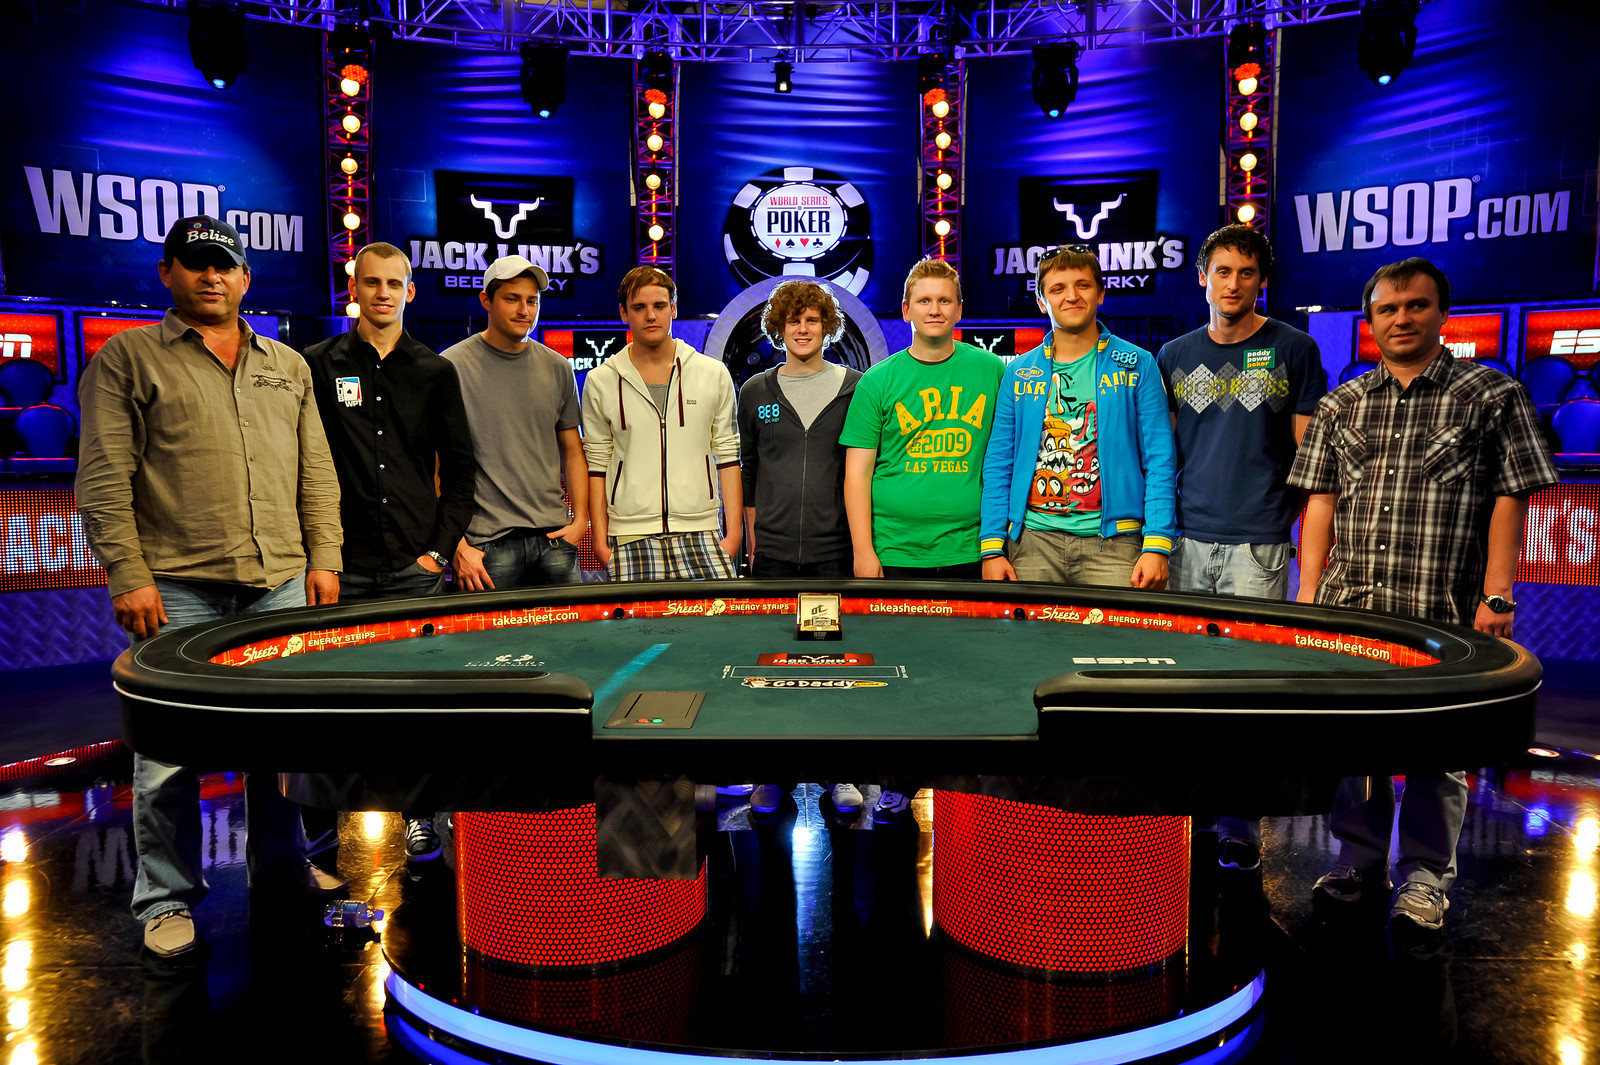 wsop final table